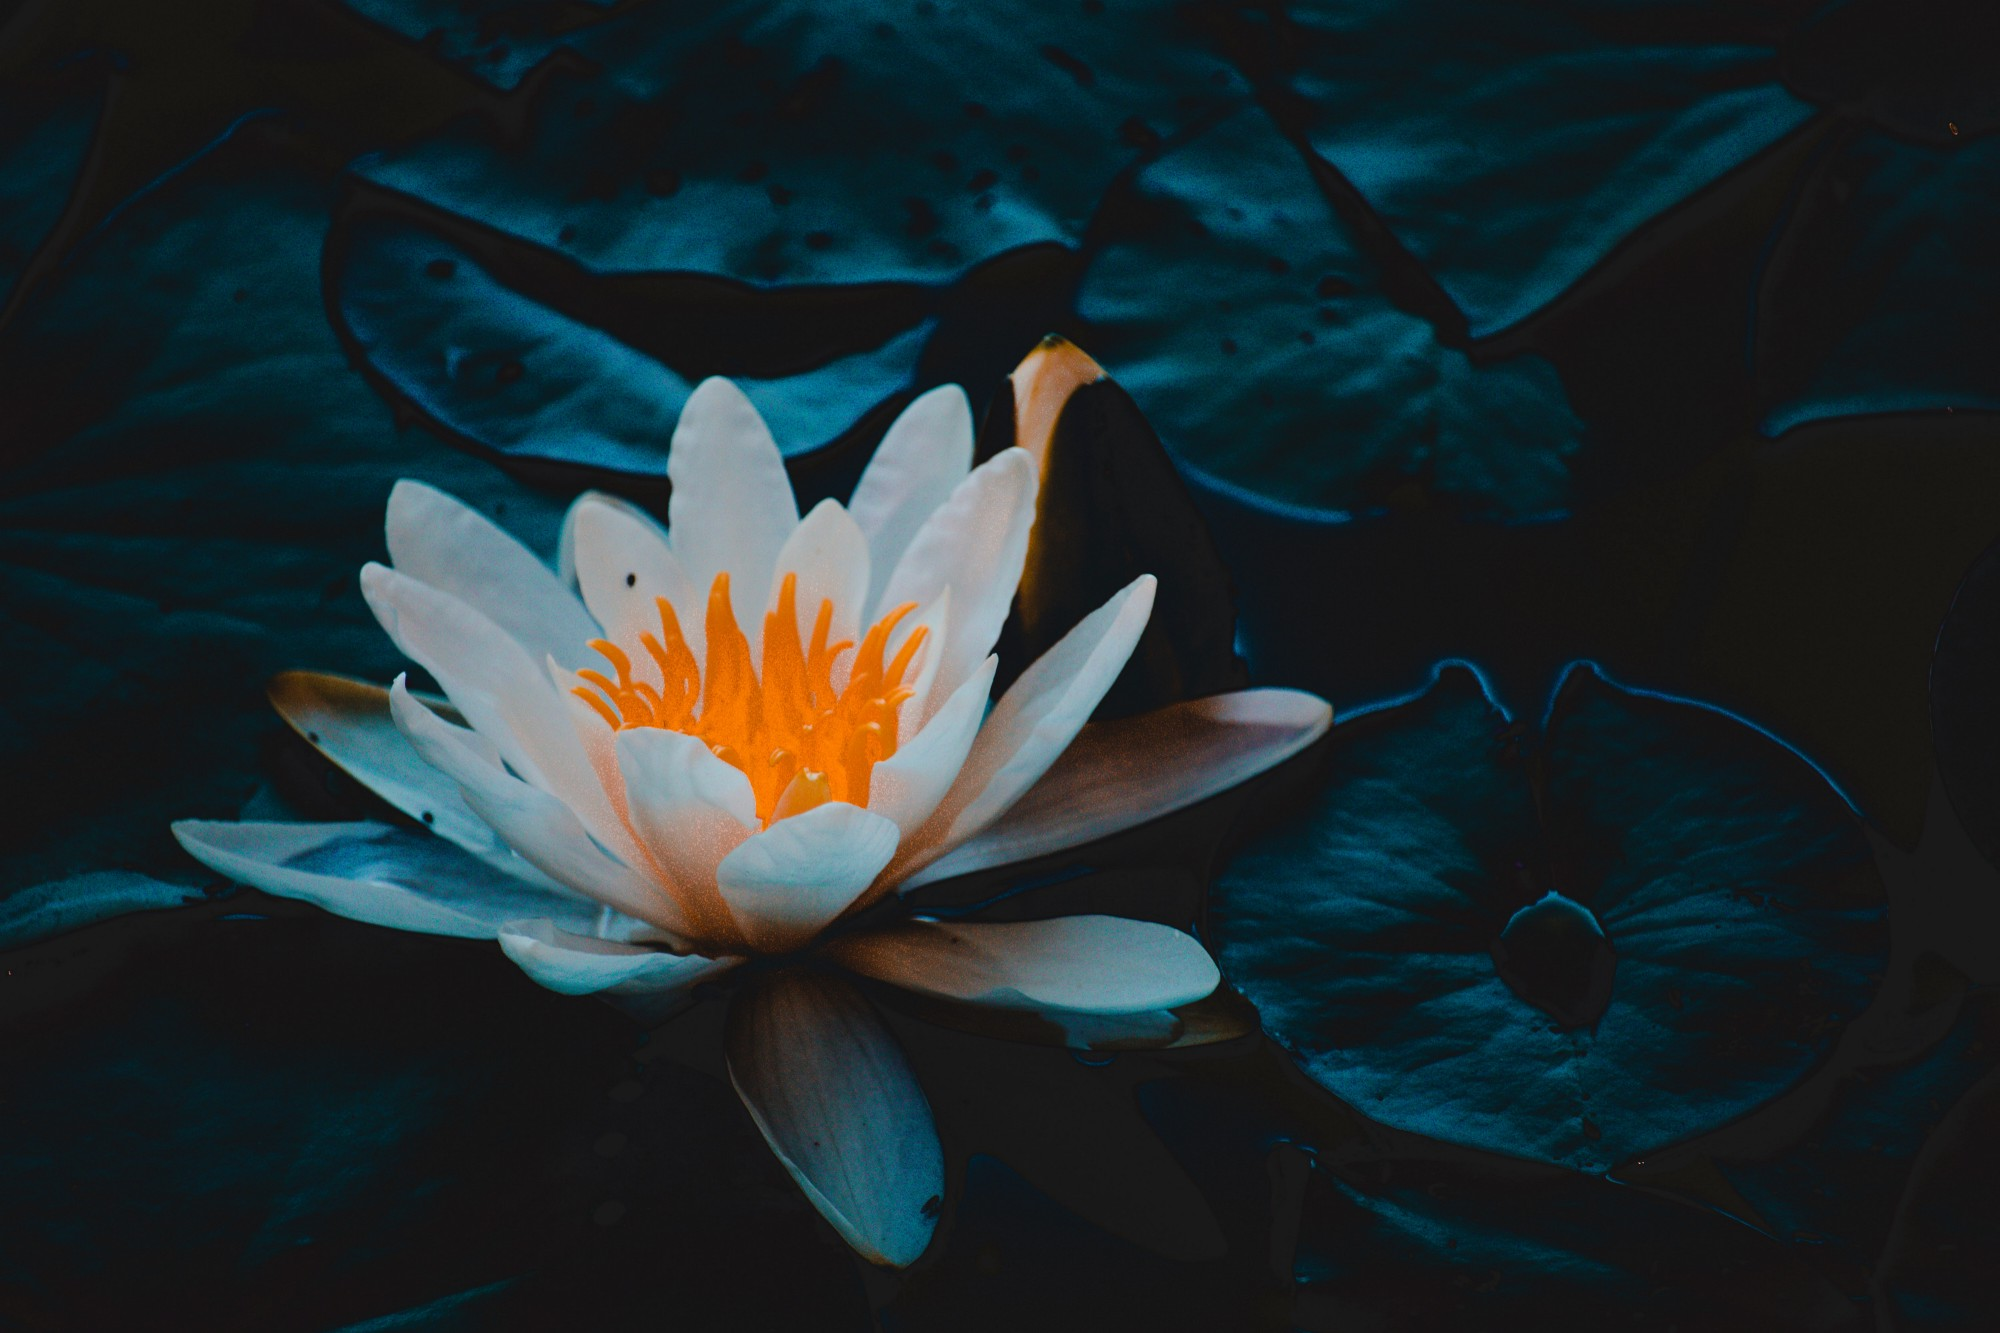 Image of a white water lily with orange center on a dark blue watery background